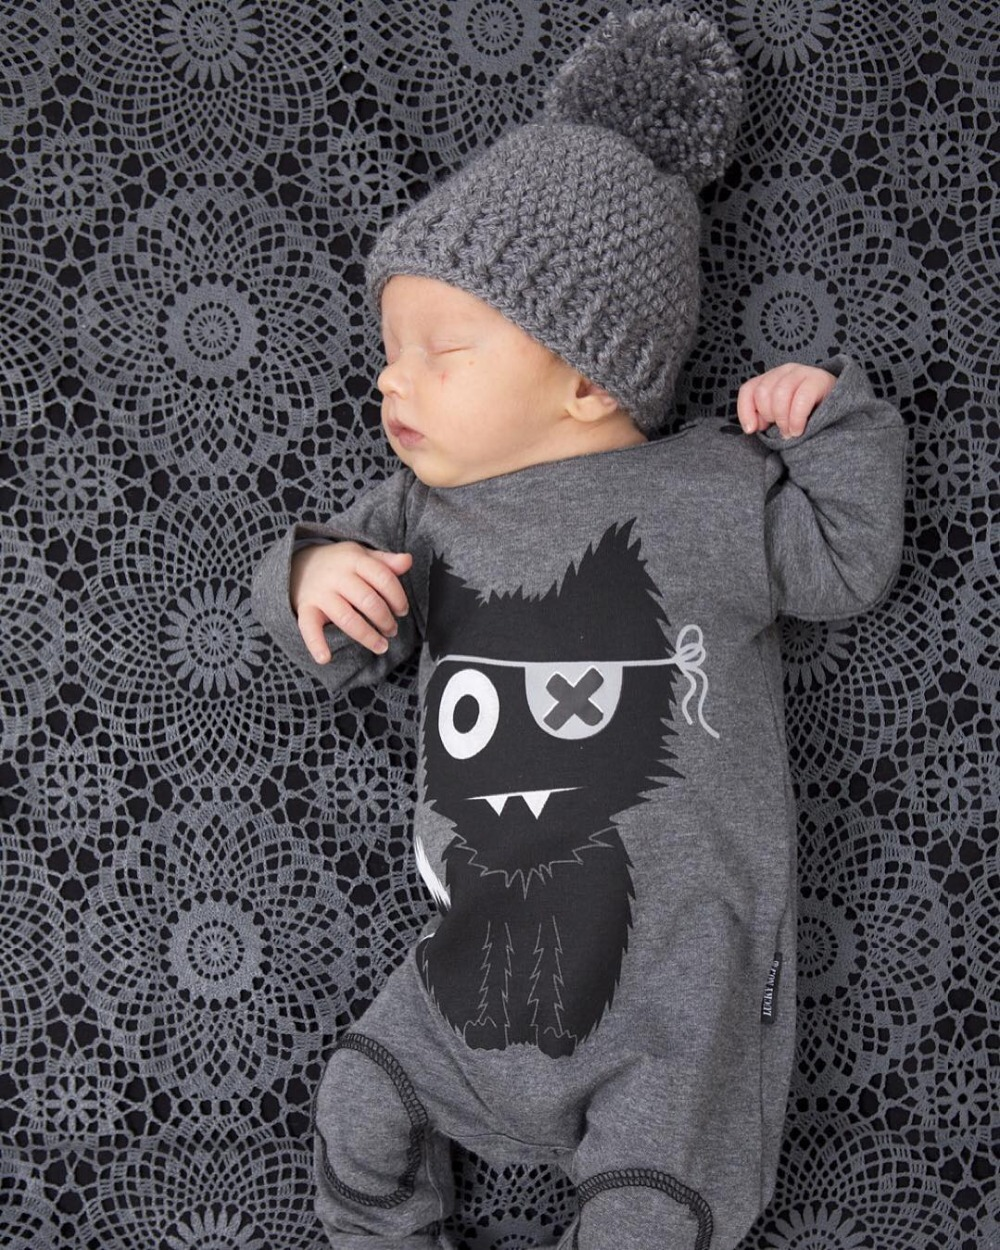 2016 fashion baby boy clothes long sleeve baby rompers newborn cotton baby girl clothing jumpsuit infant clothing roupas de bebe 2016 autumn newborn baby rompers fashion cotton infant jumpsuit long sleeve girl boys rompers costumes baby clothes